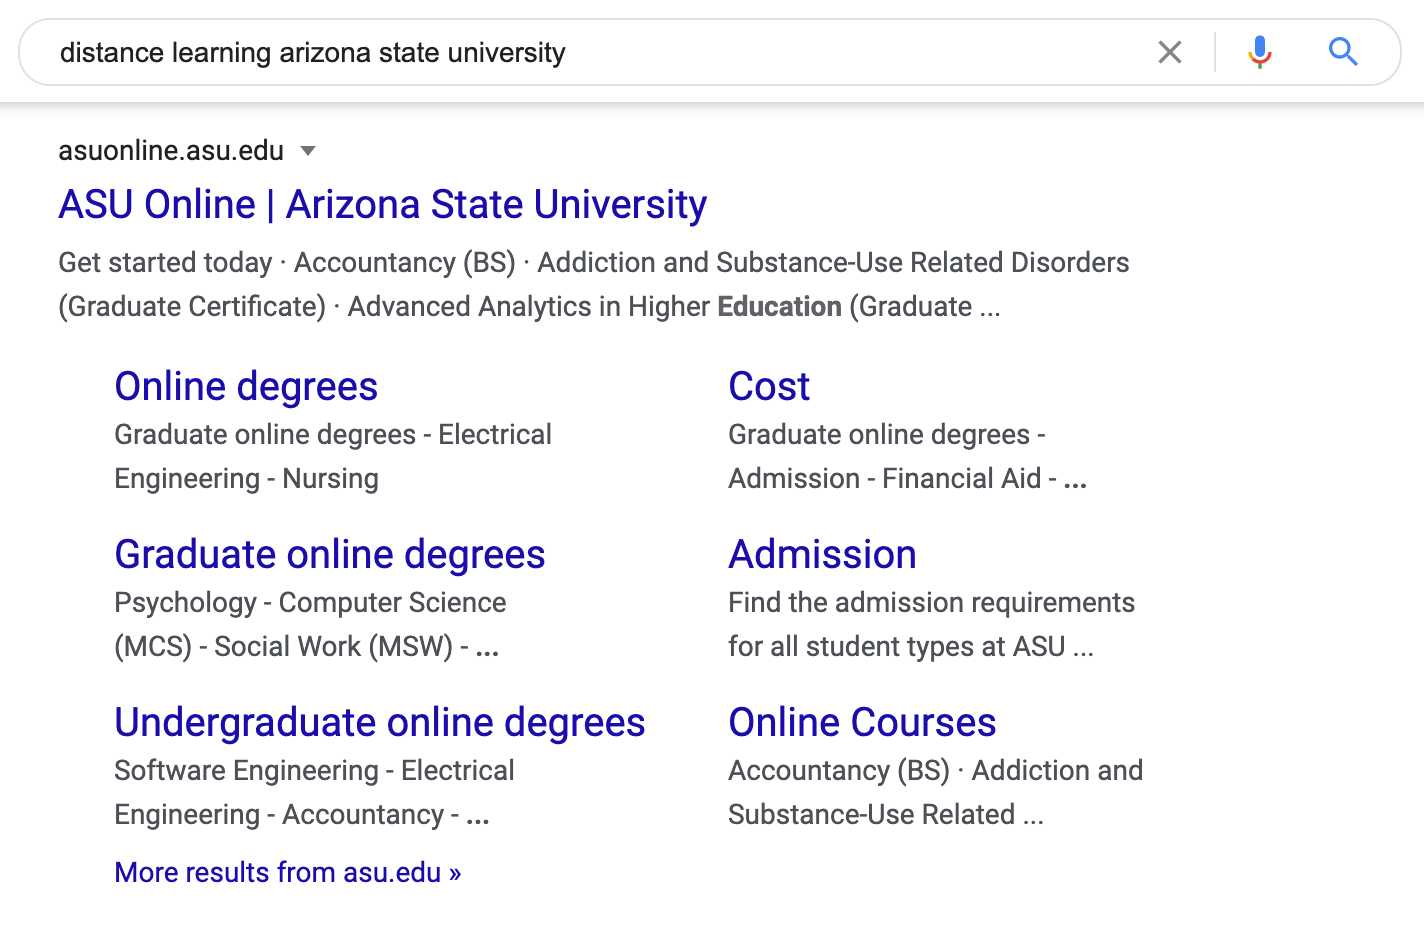 Search engine results for 'distance learning arizona state university'